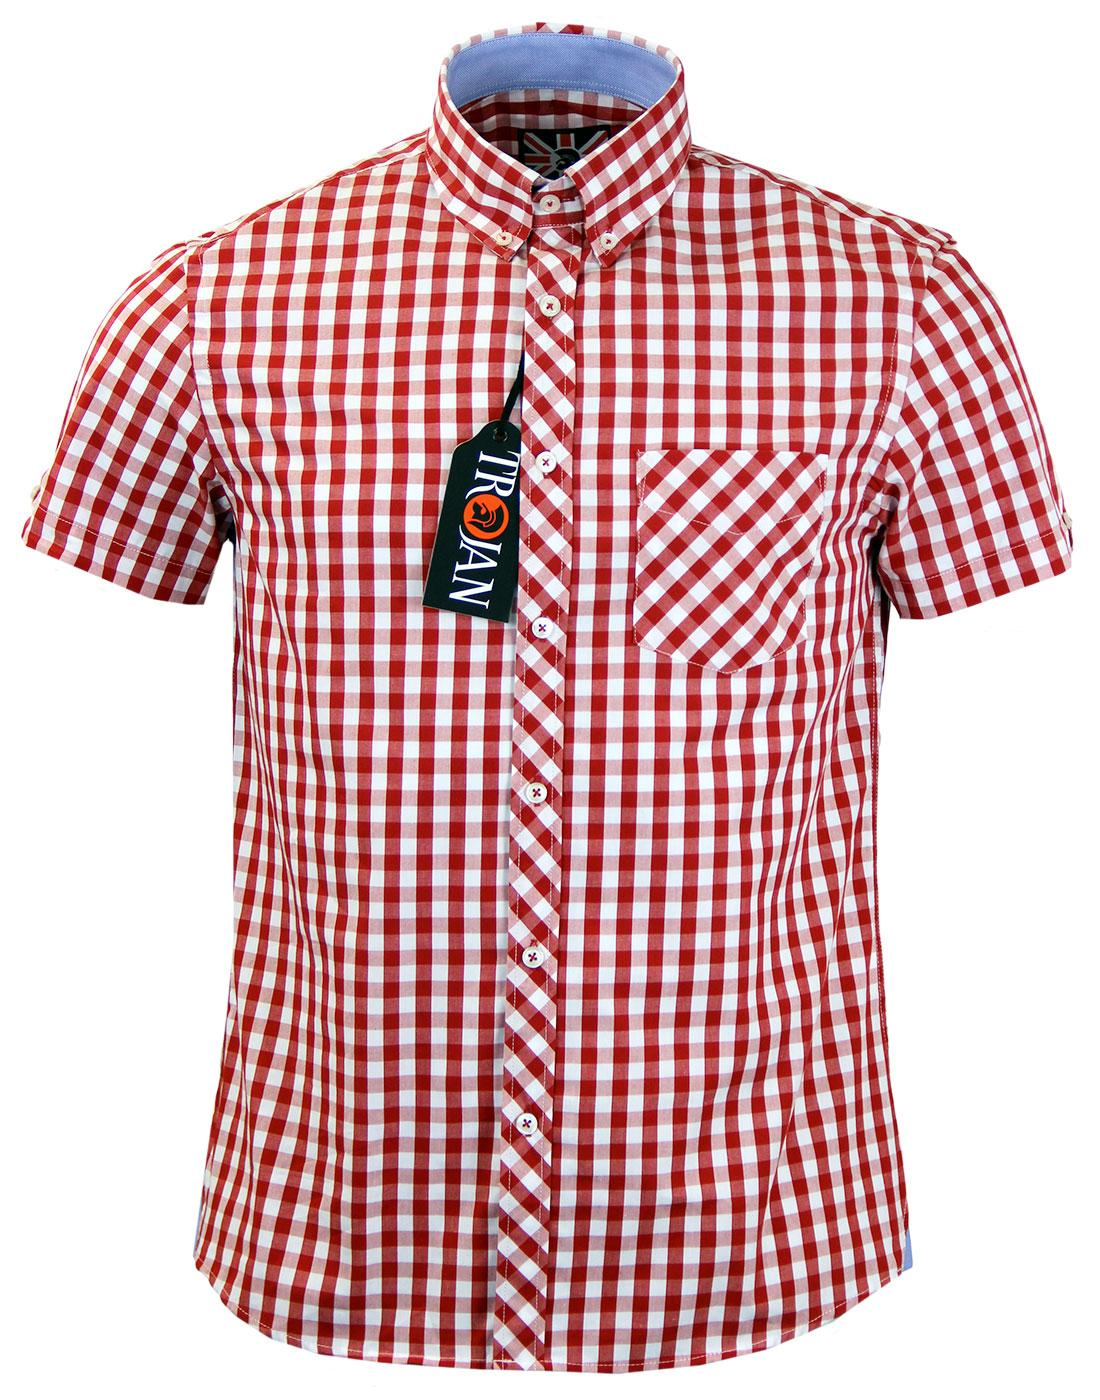 TROJAN RECORDS Retro Mod Gingham Check S/S Shirt